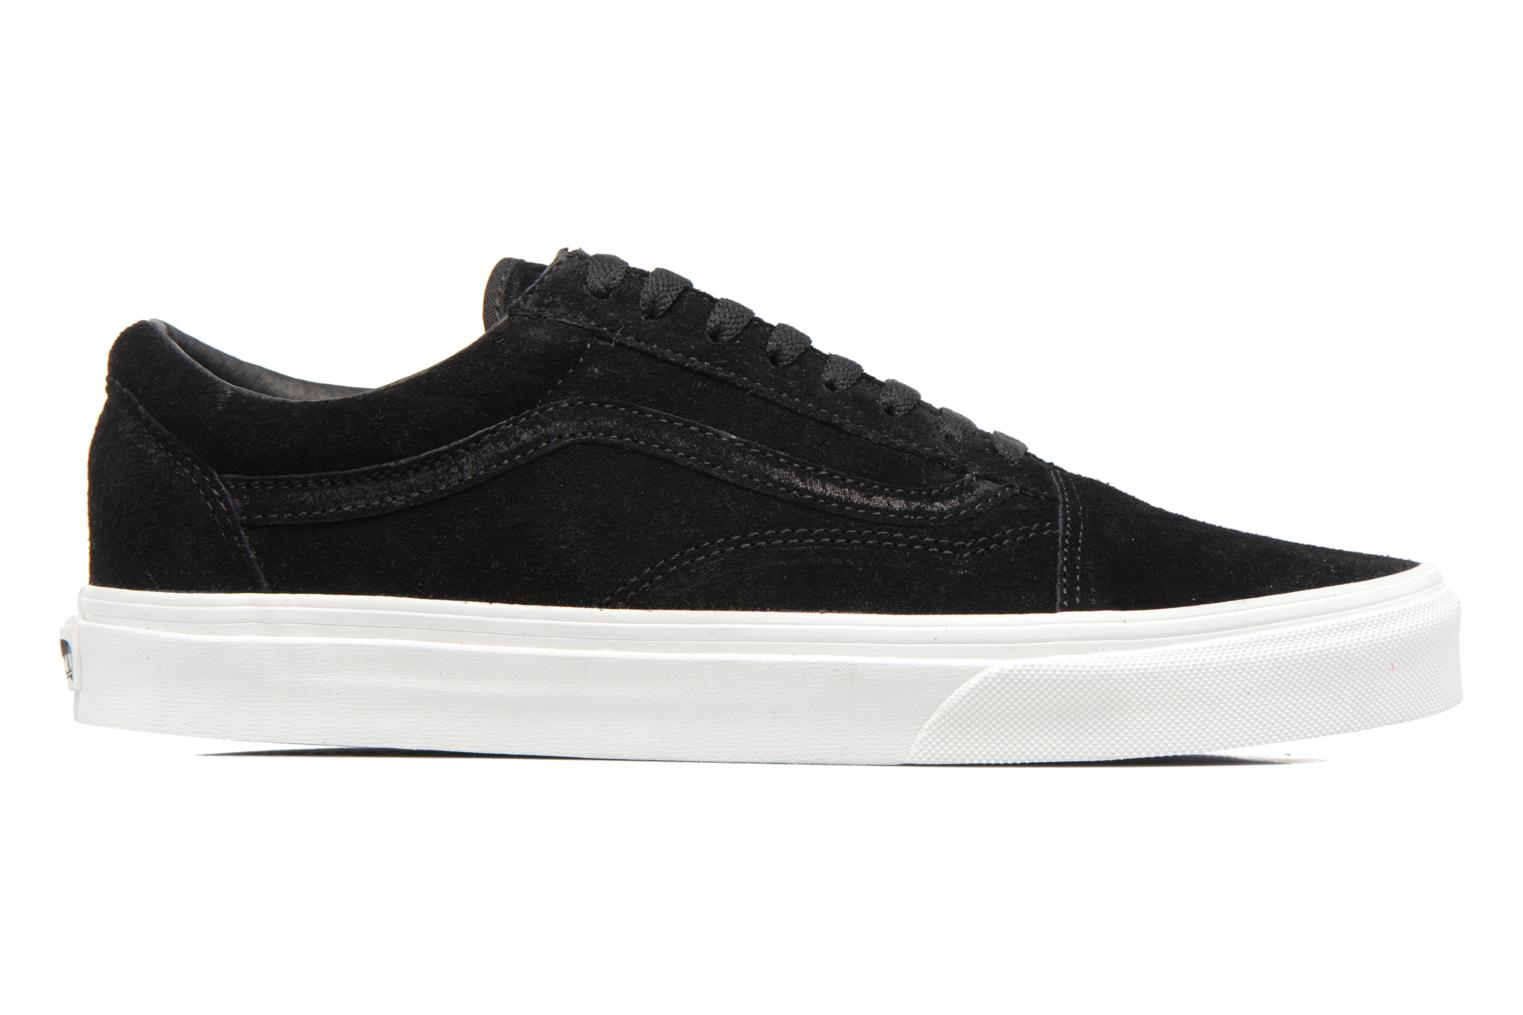 Old Skool (Suede) Black/Blanc De Blanc